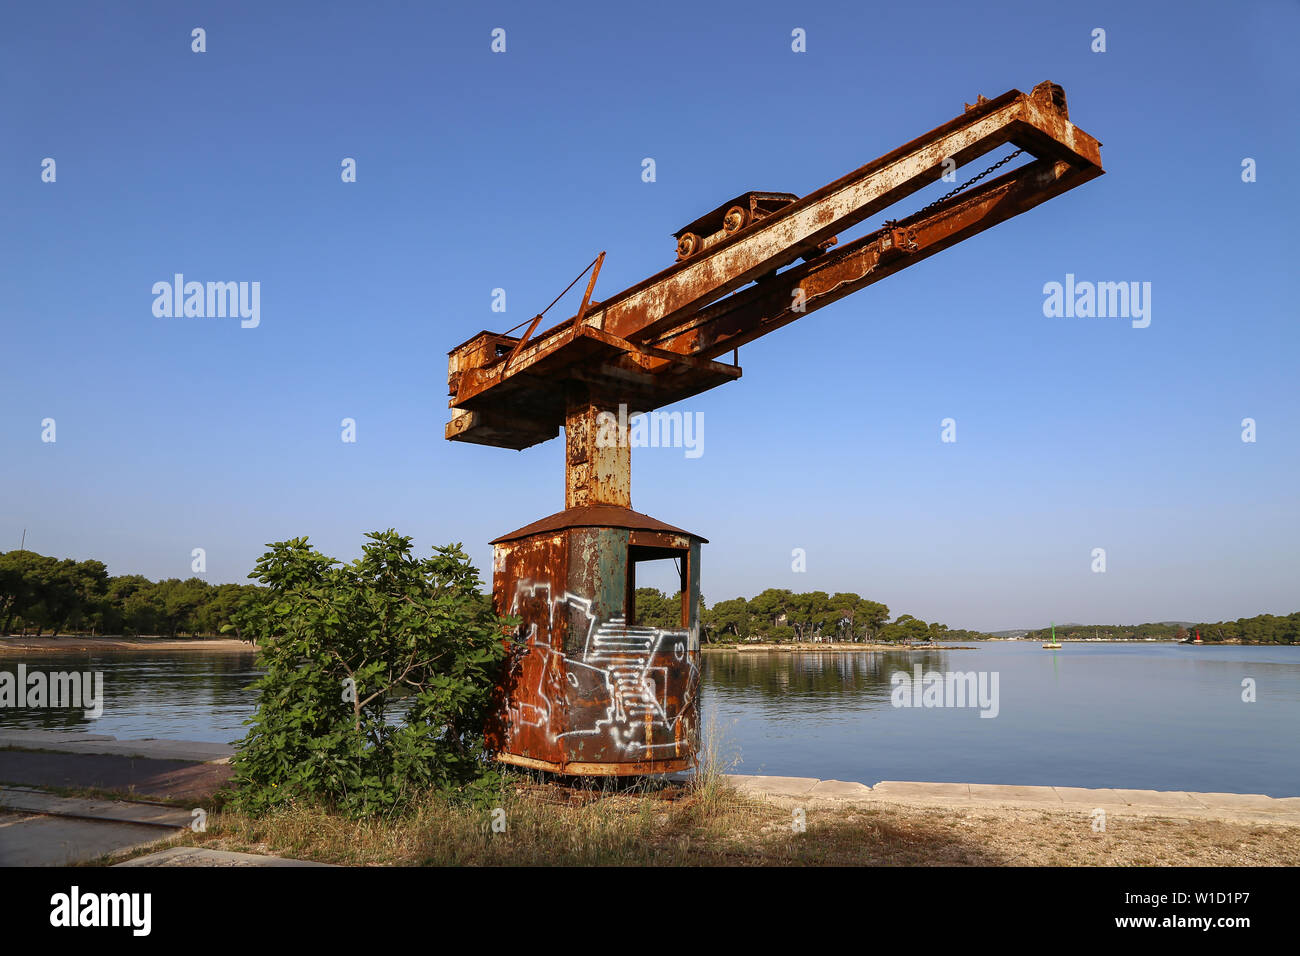 Old port crane rusts in the sun. - Stock Image